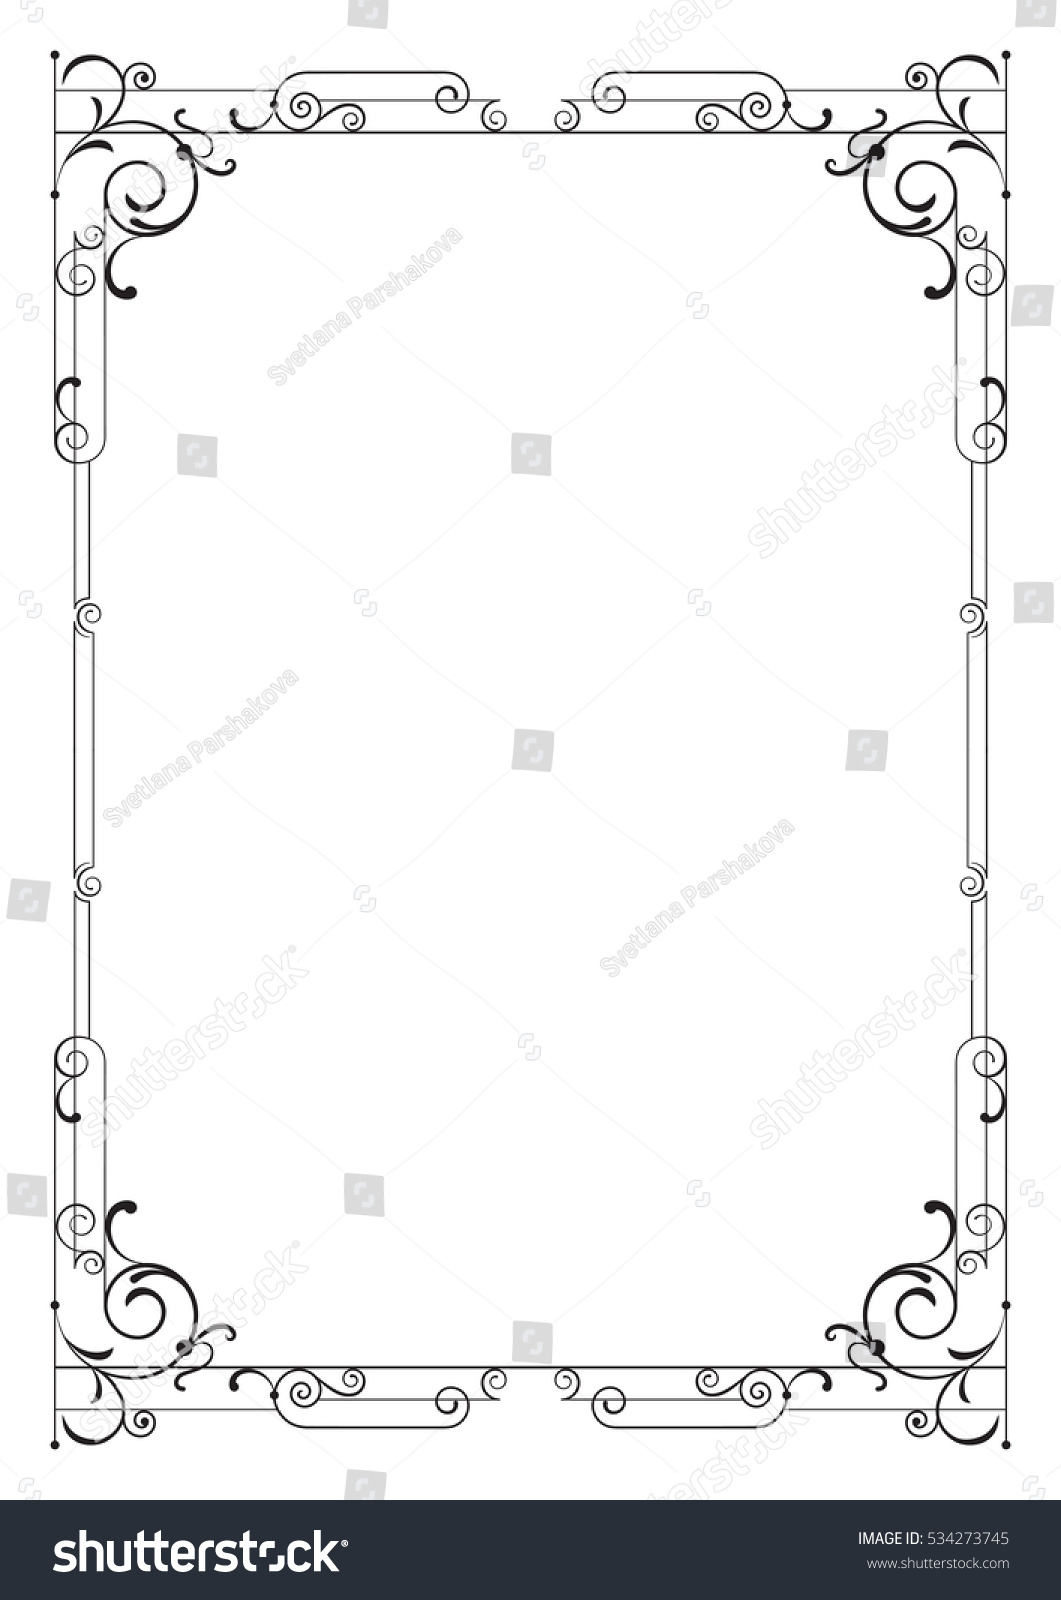 Whimsical Black Rectangular Frame A 4 Page Stock Vector HD (Royalty ...